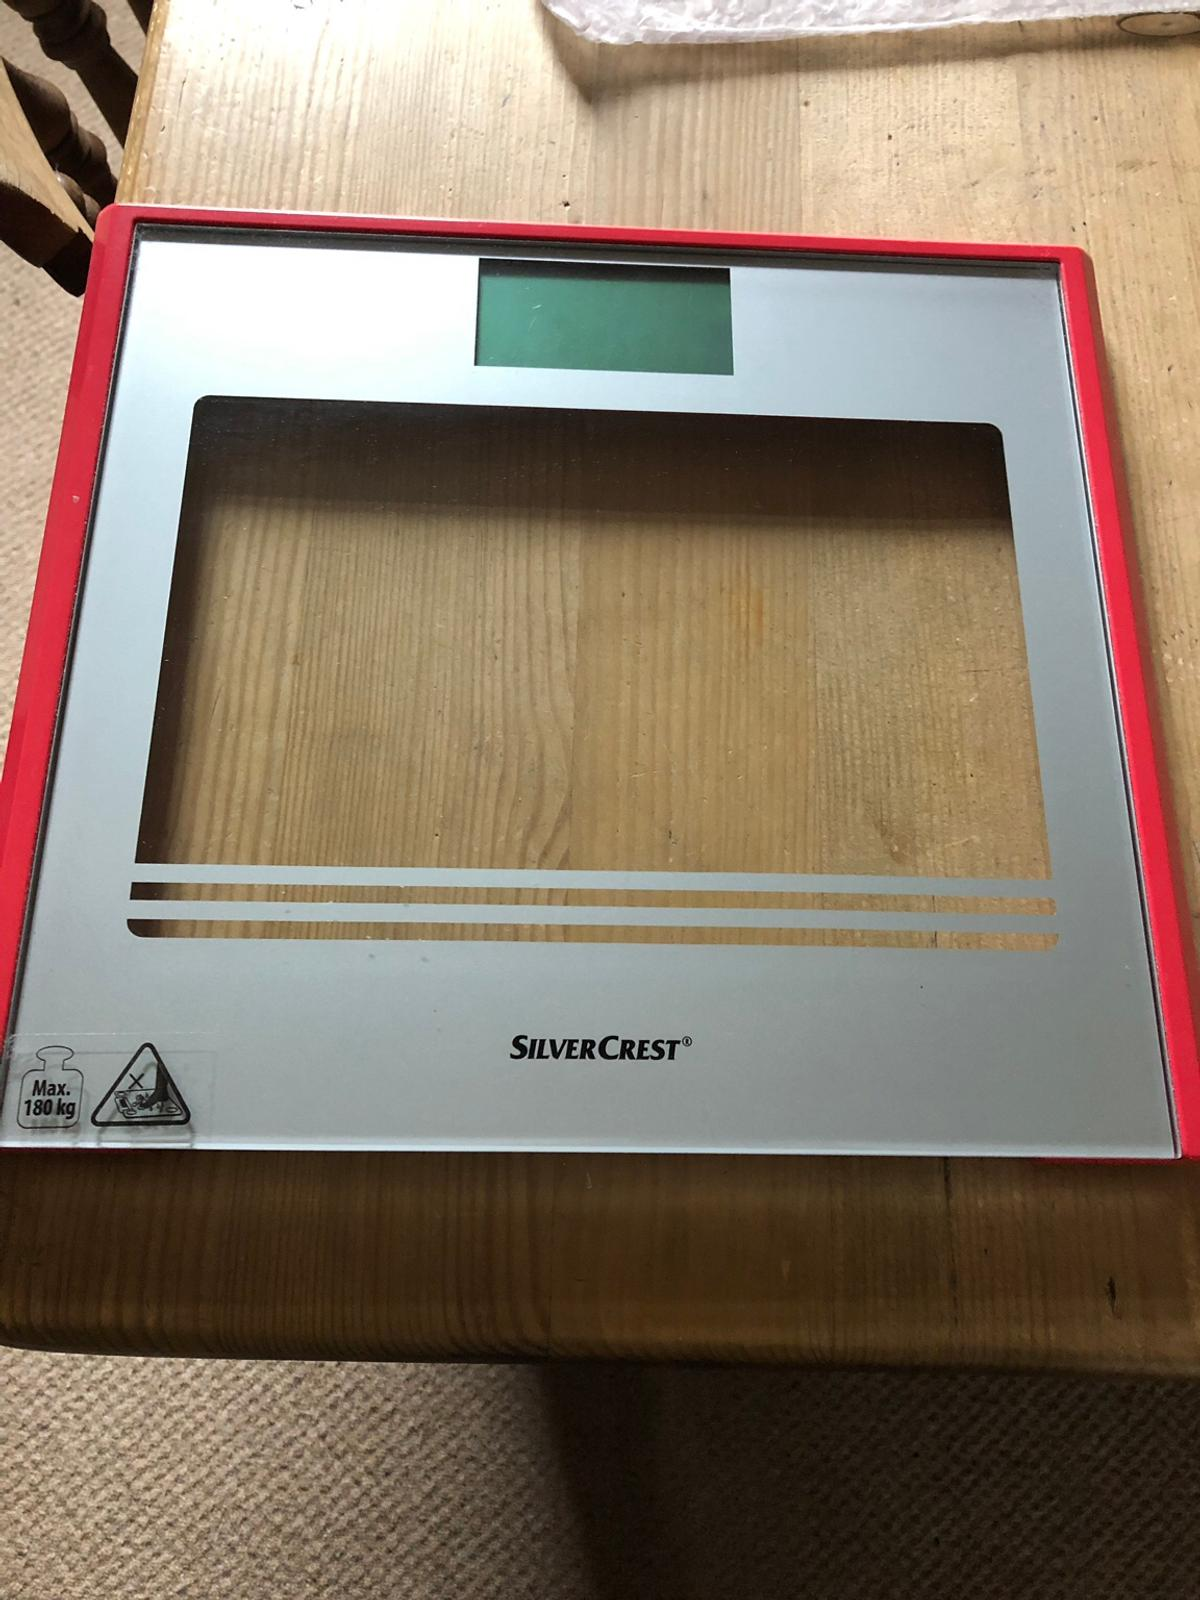 SilverCrest Digital Weighing Scales